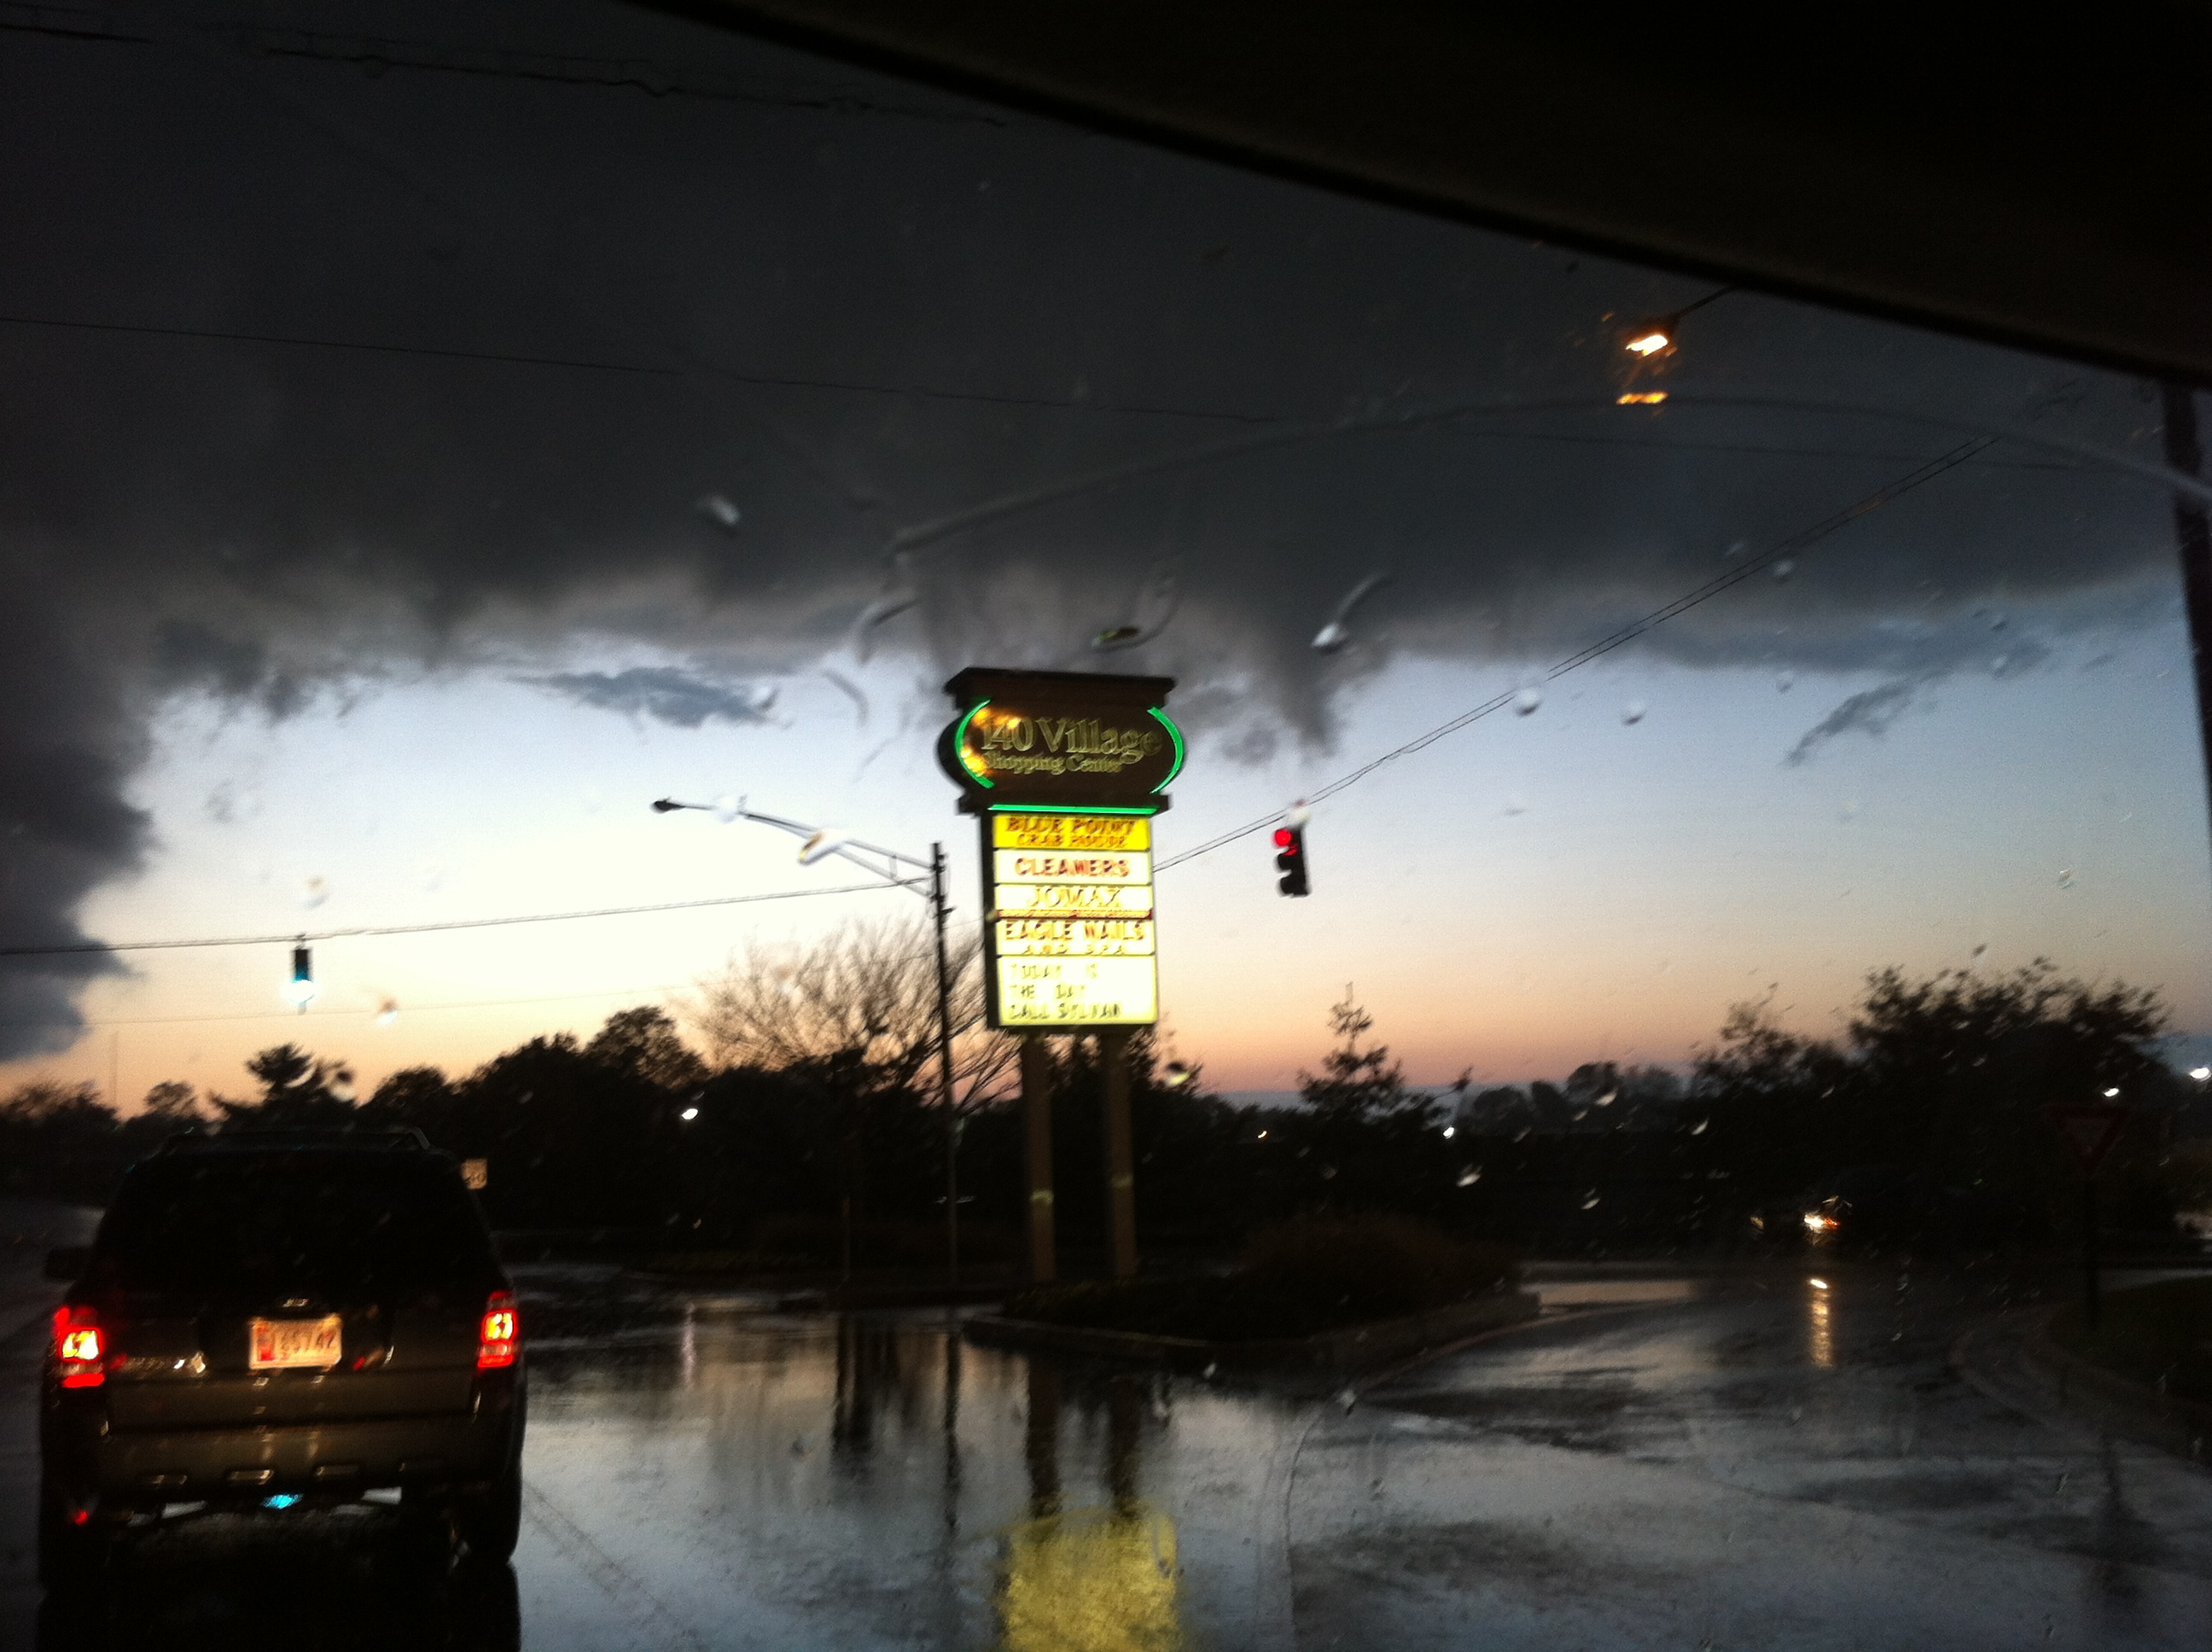 Favorite Weather Picture - taken in Westminster, MD with a storm rolling in